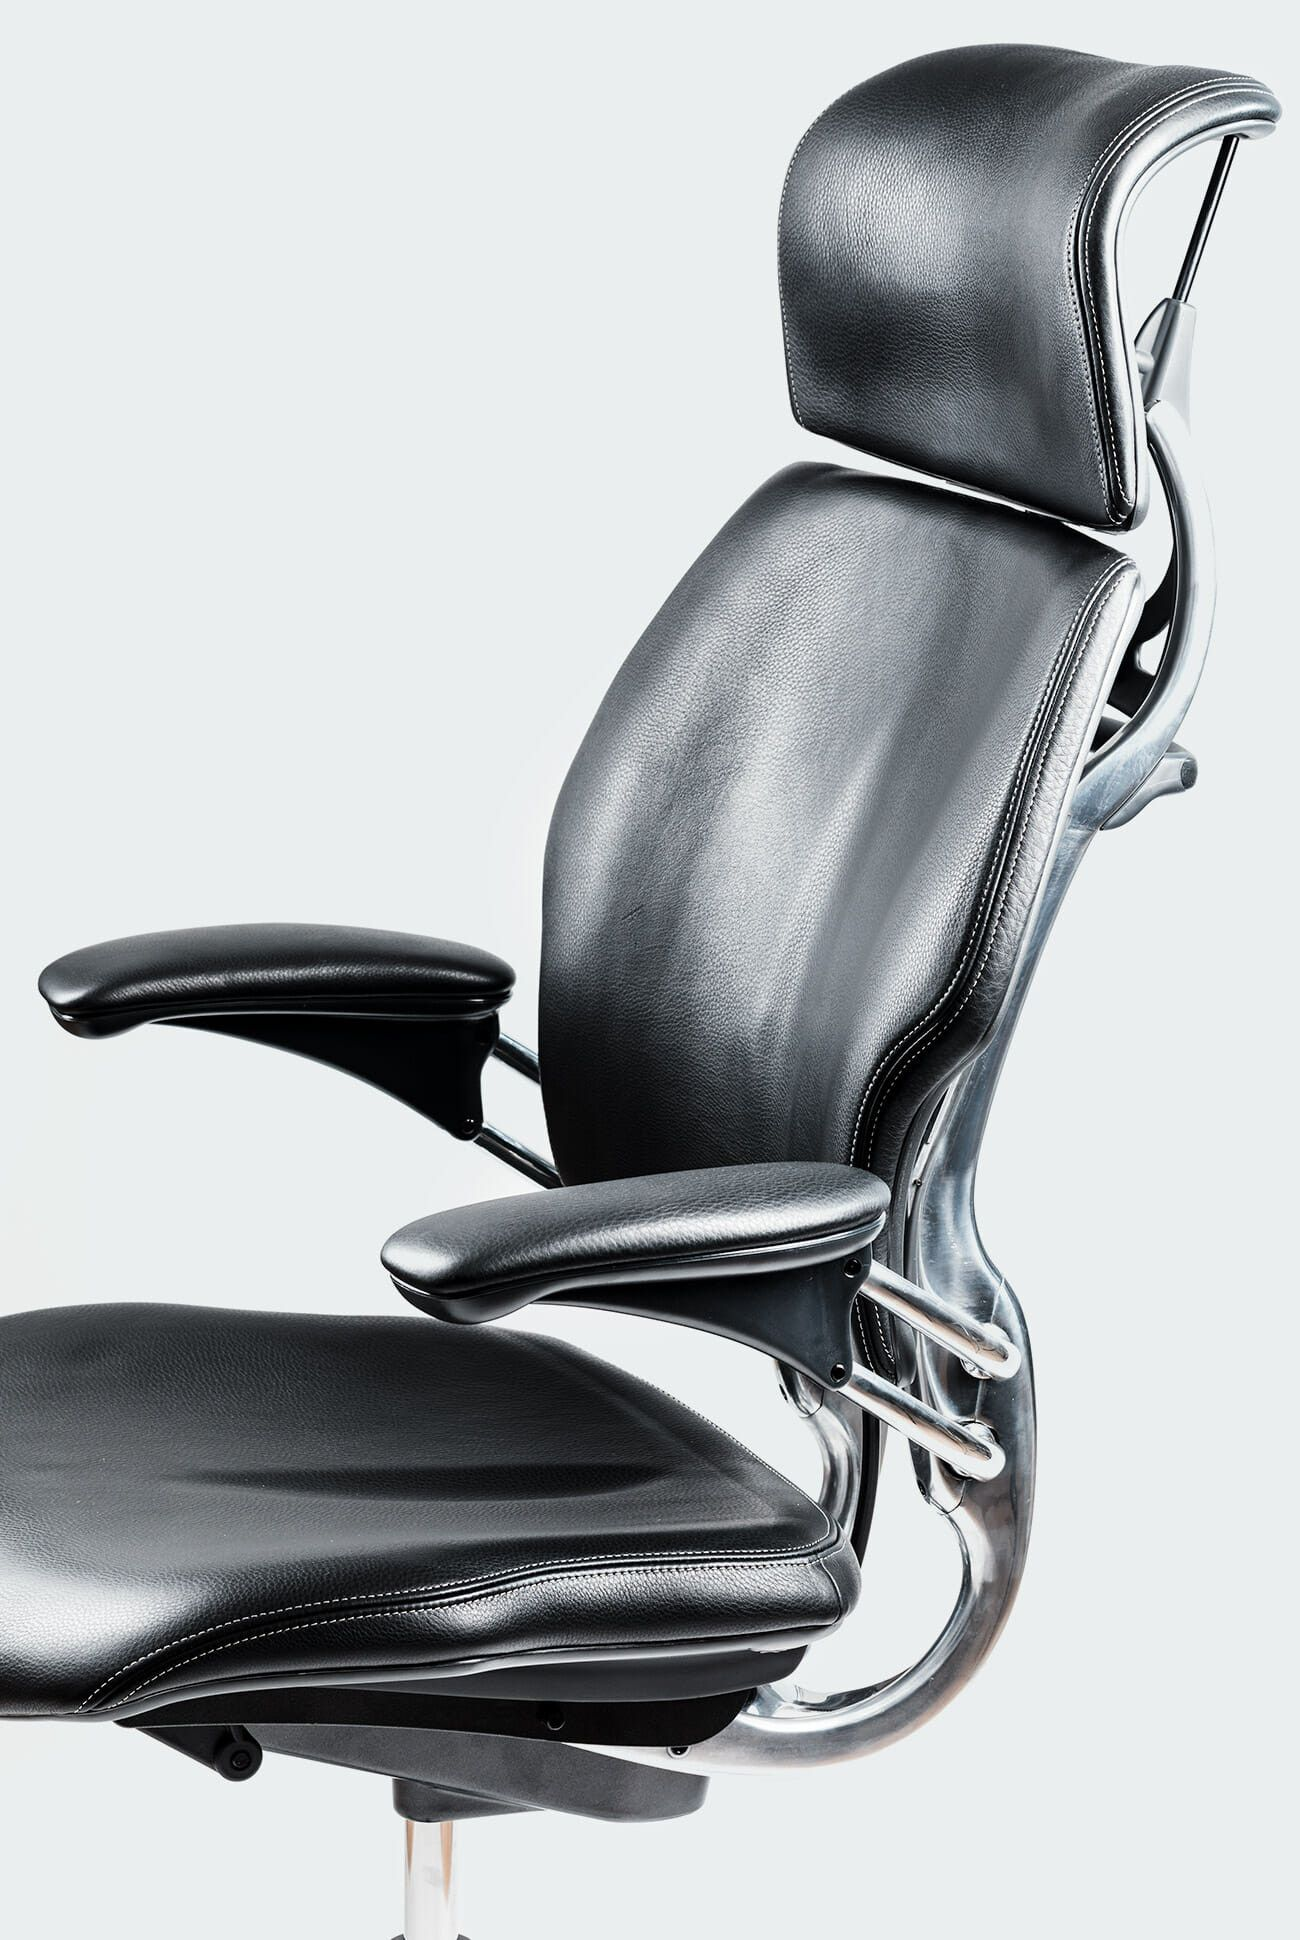 Best Office Chair 2021 Best Leather Office Chair 2021 in 2020 | Best office chair, Office